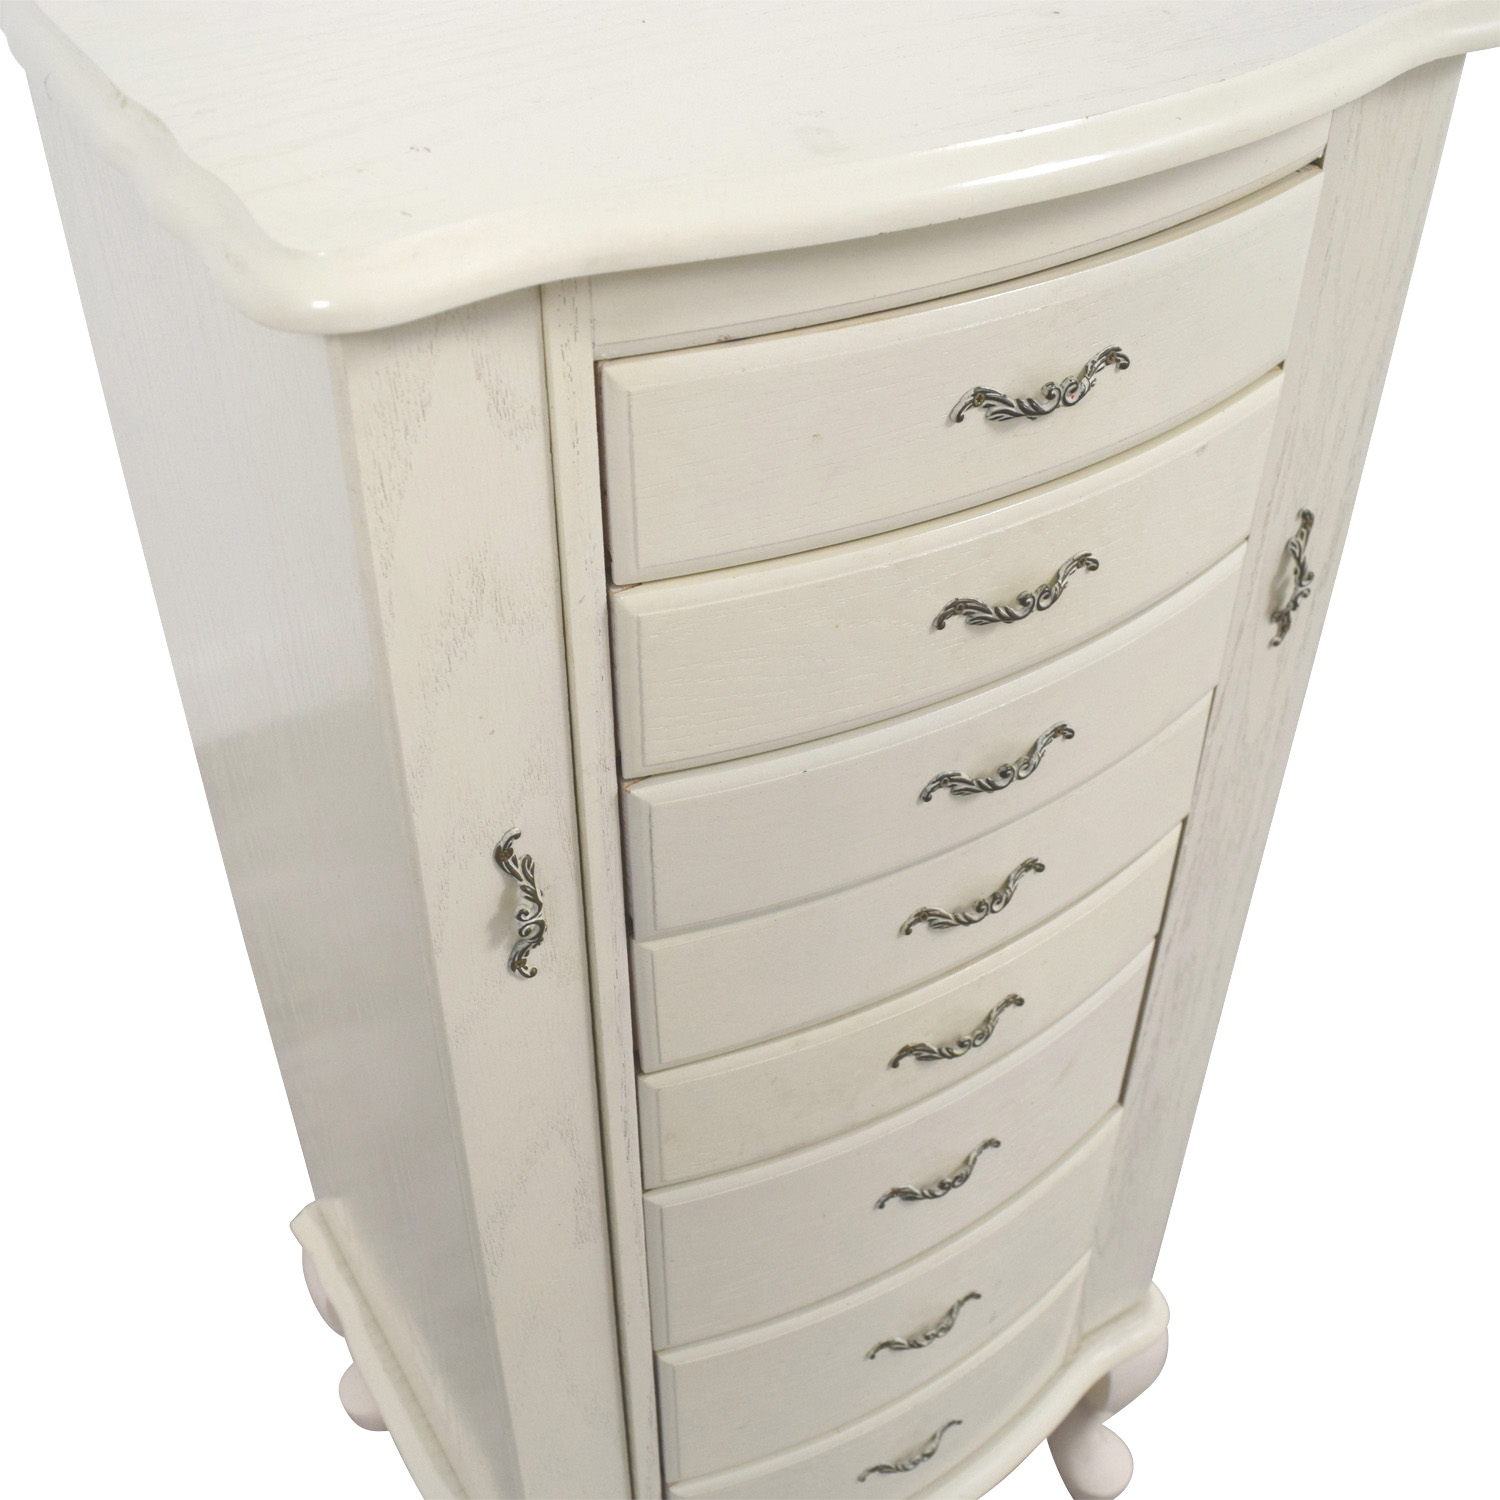 80 OFF White Vintage Jewelry Armoire Storage